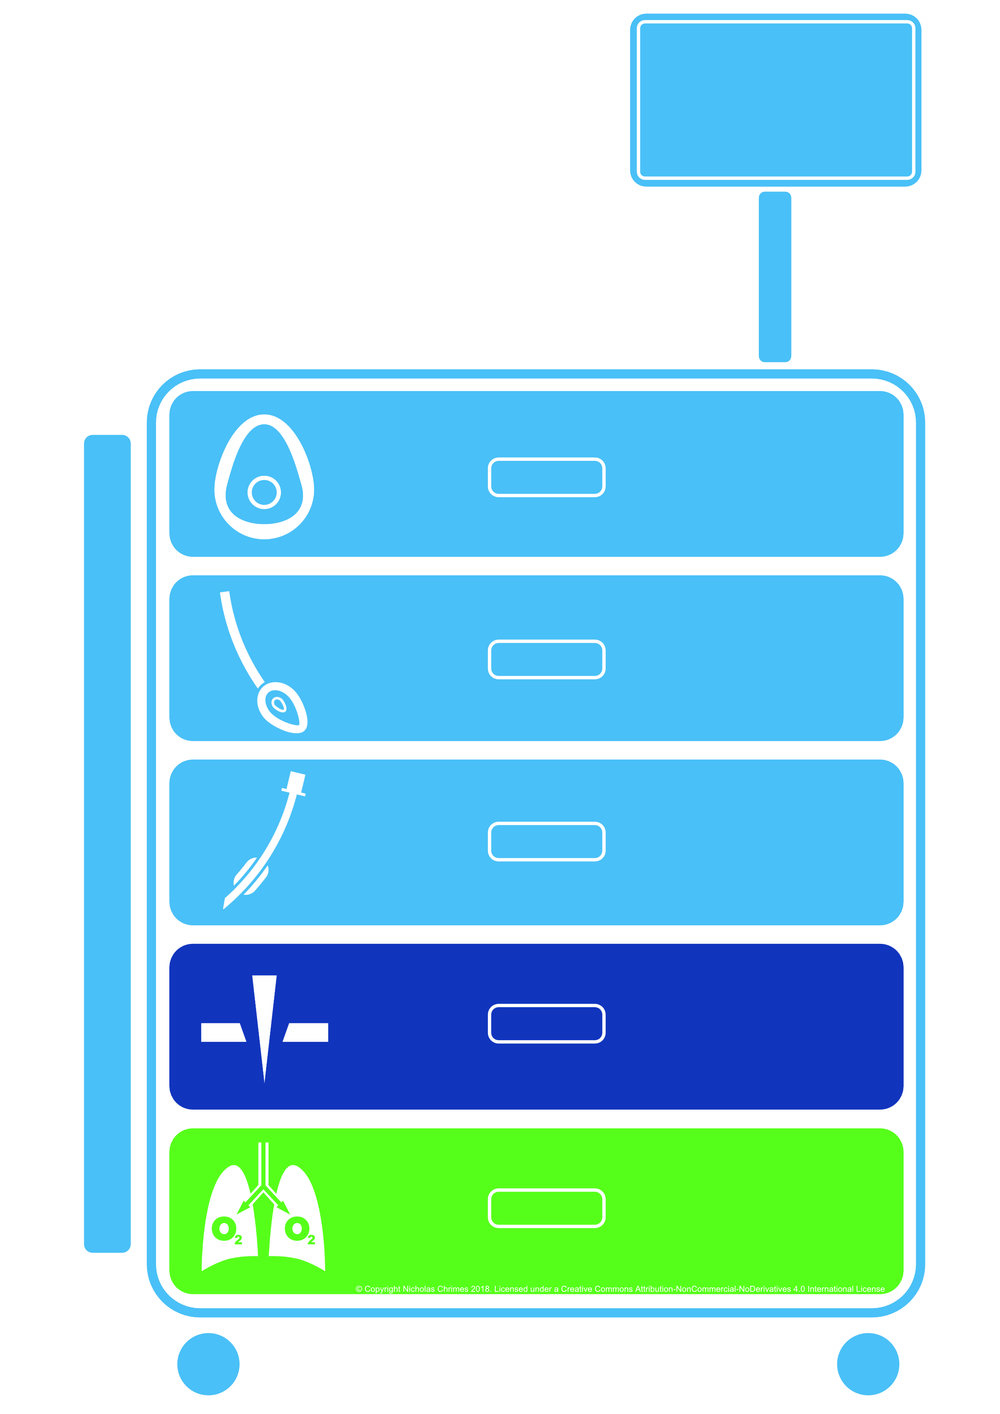 Airway Cart Icon. No text.